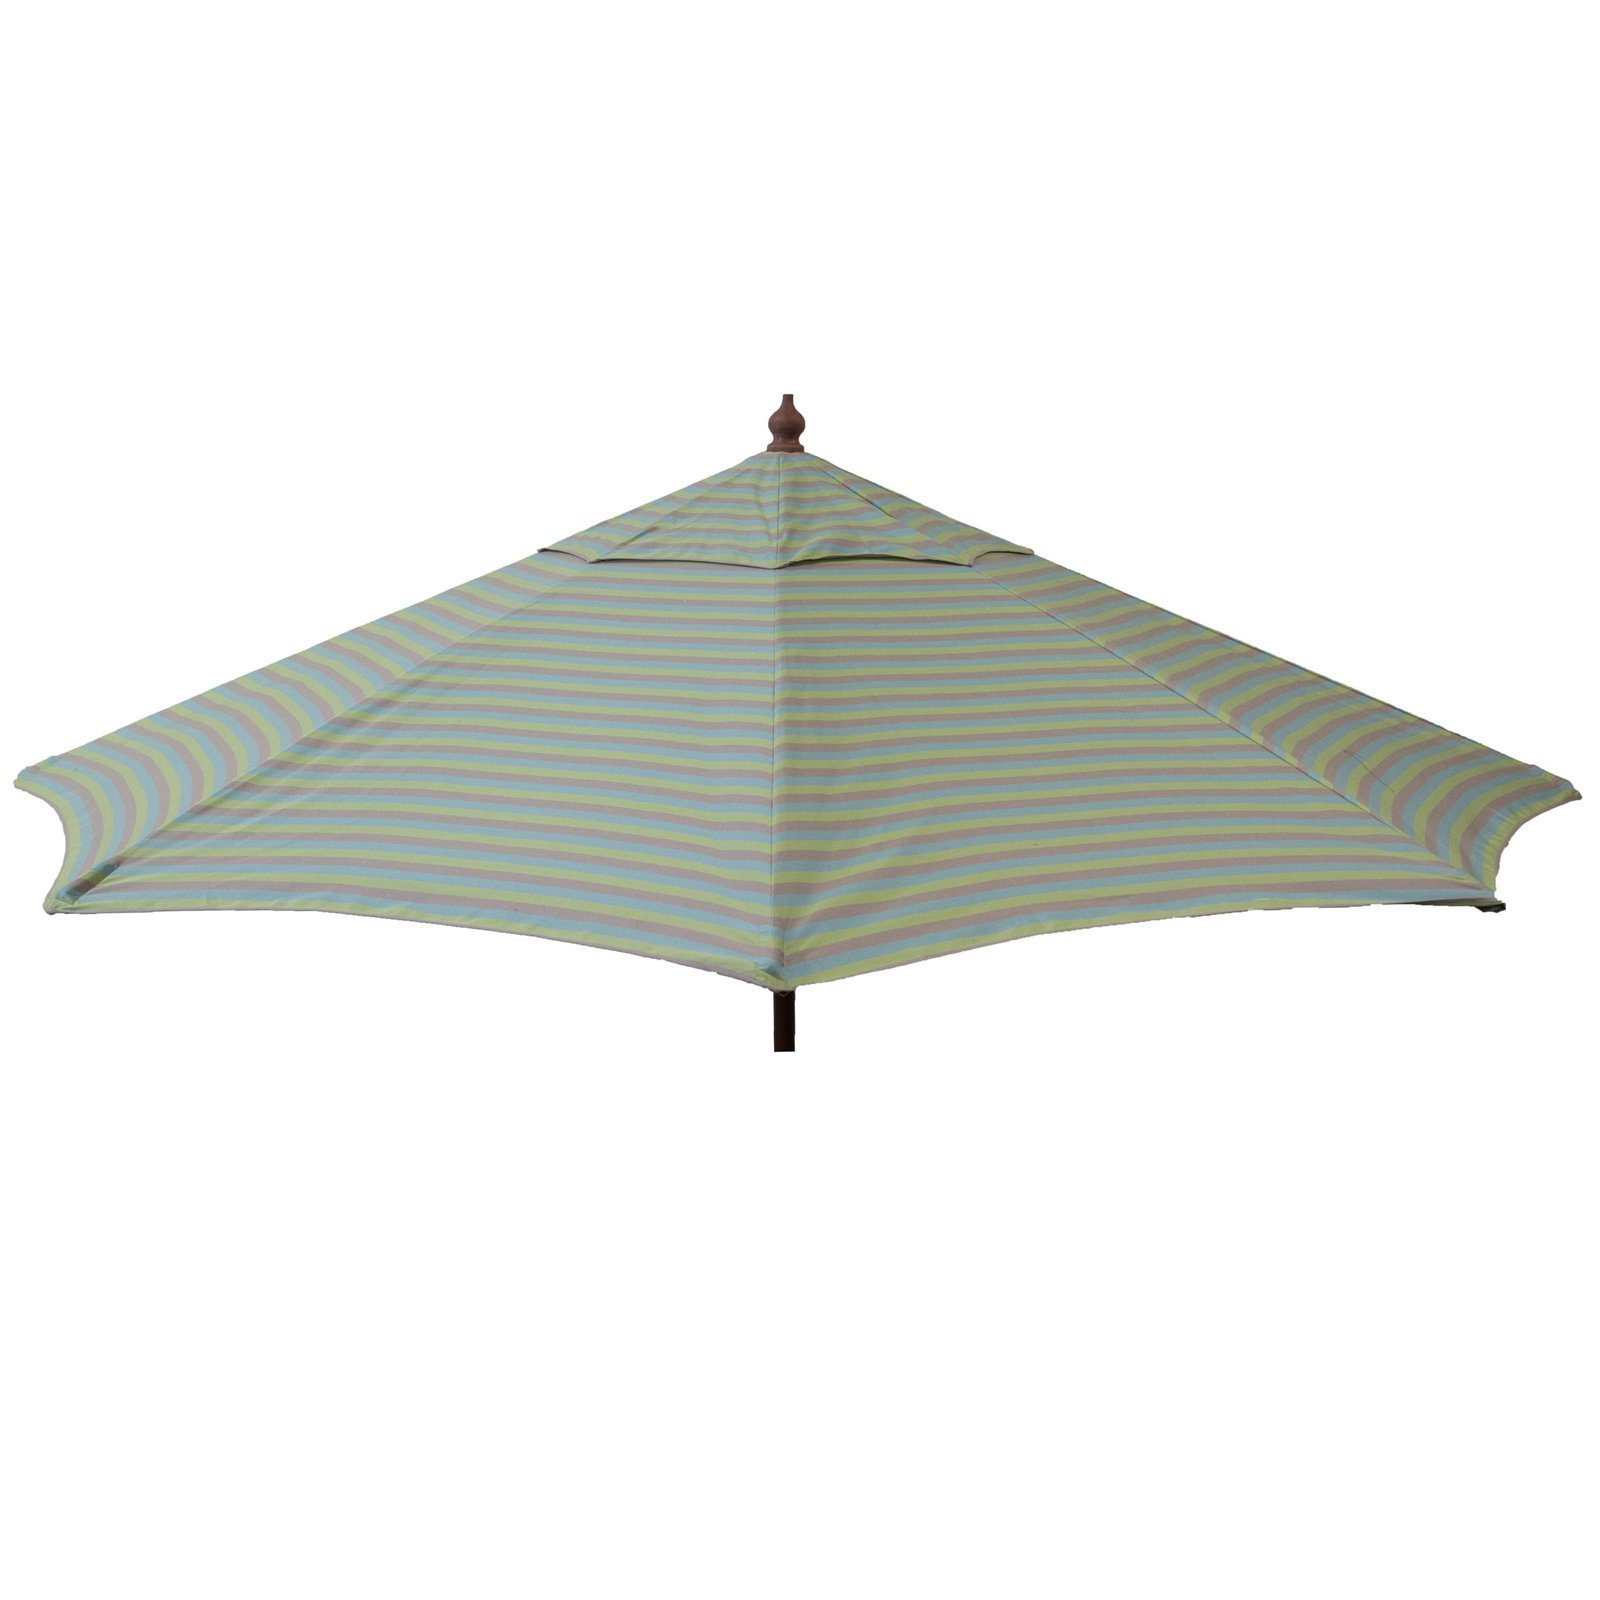 Destination Gear 9ft Italian Patio Umbrella - Blue Olive Taupe